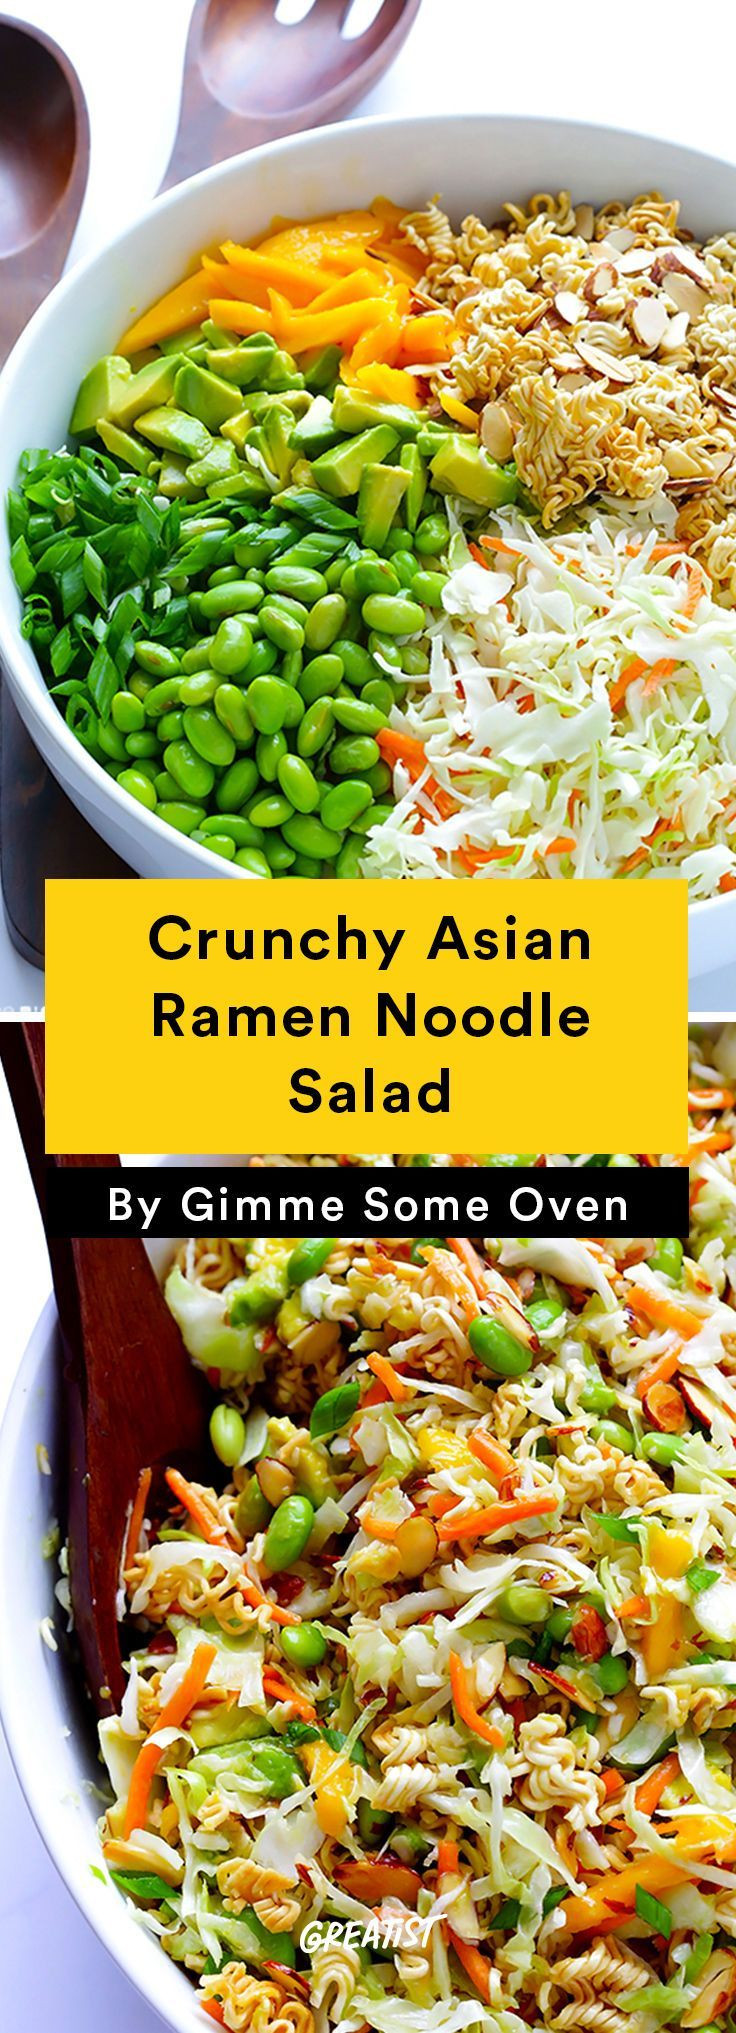 Japanese Summer Recipes  7 Summer Salads You ll Actually Want to Eat